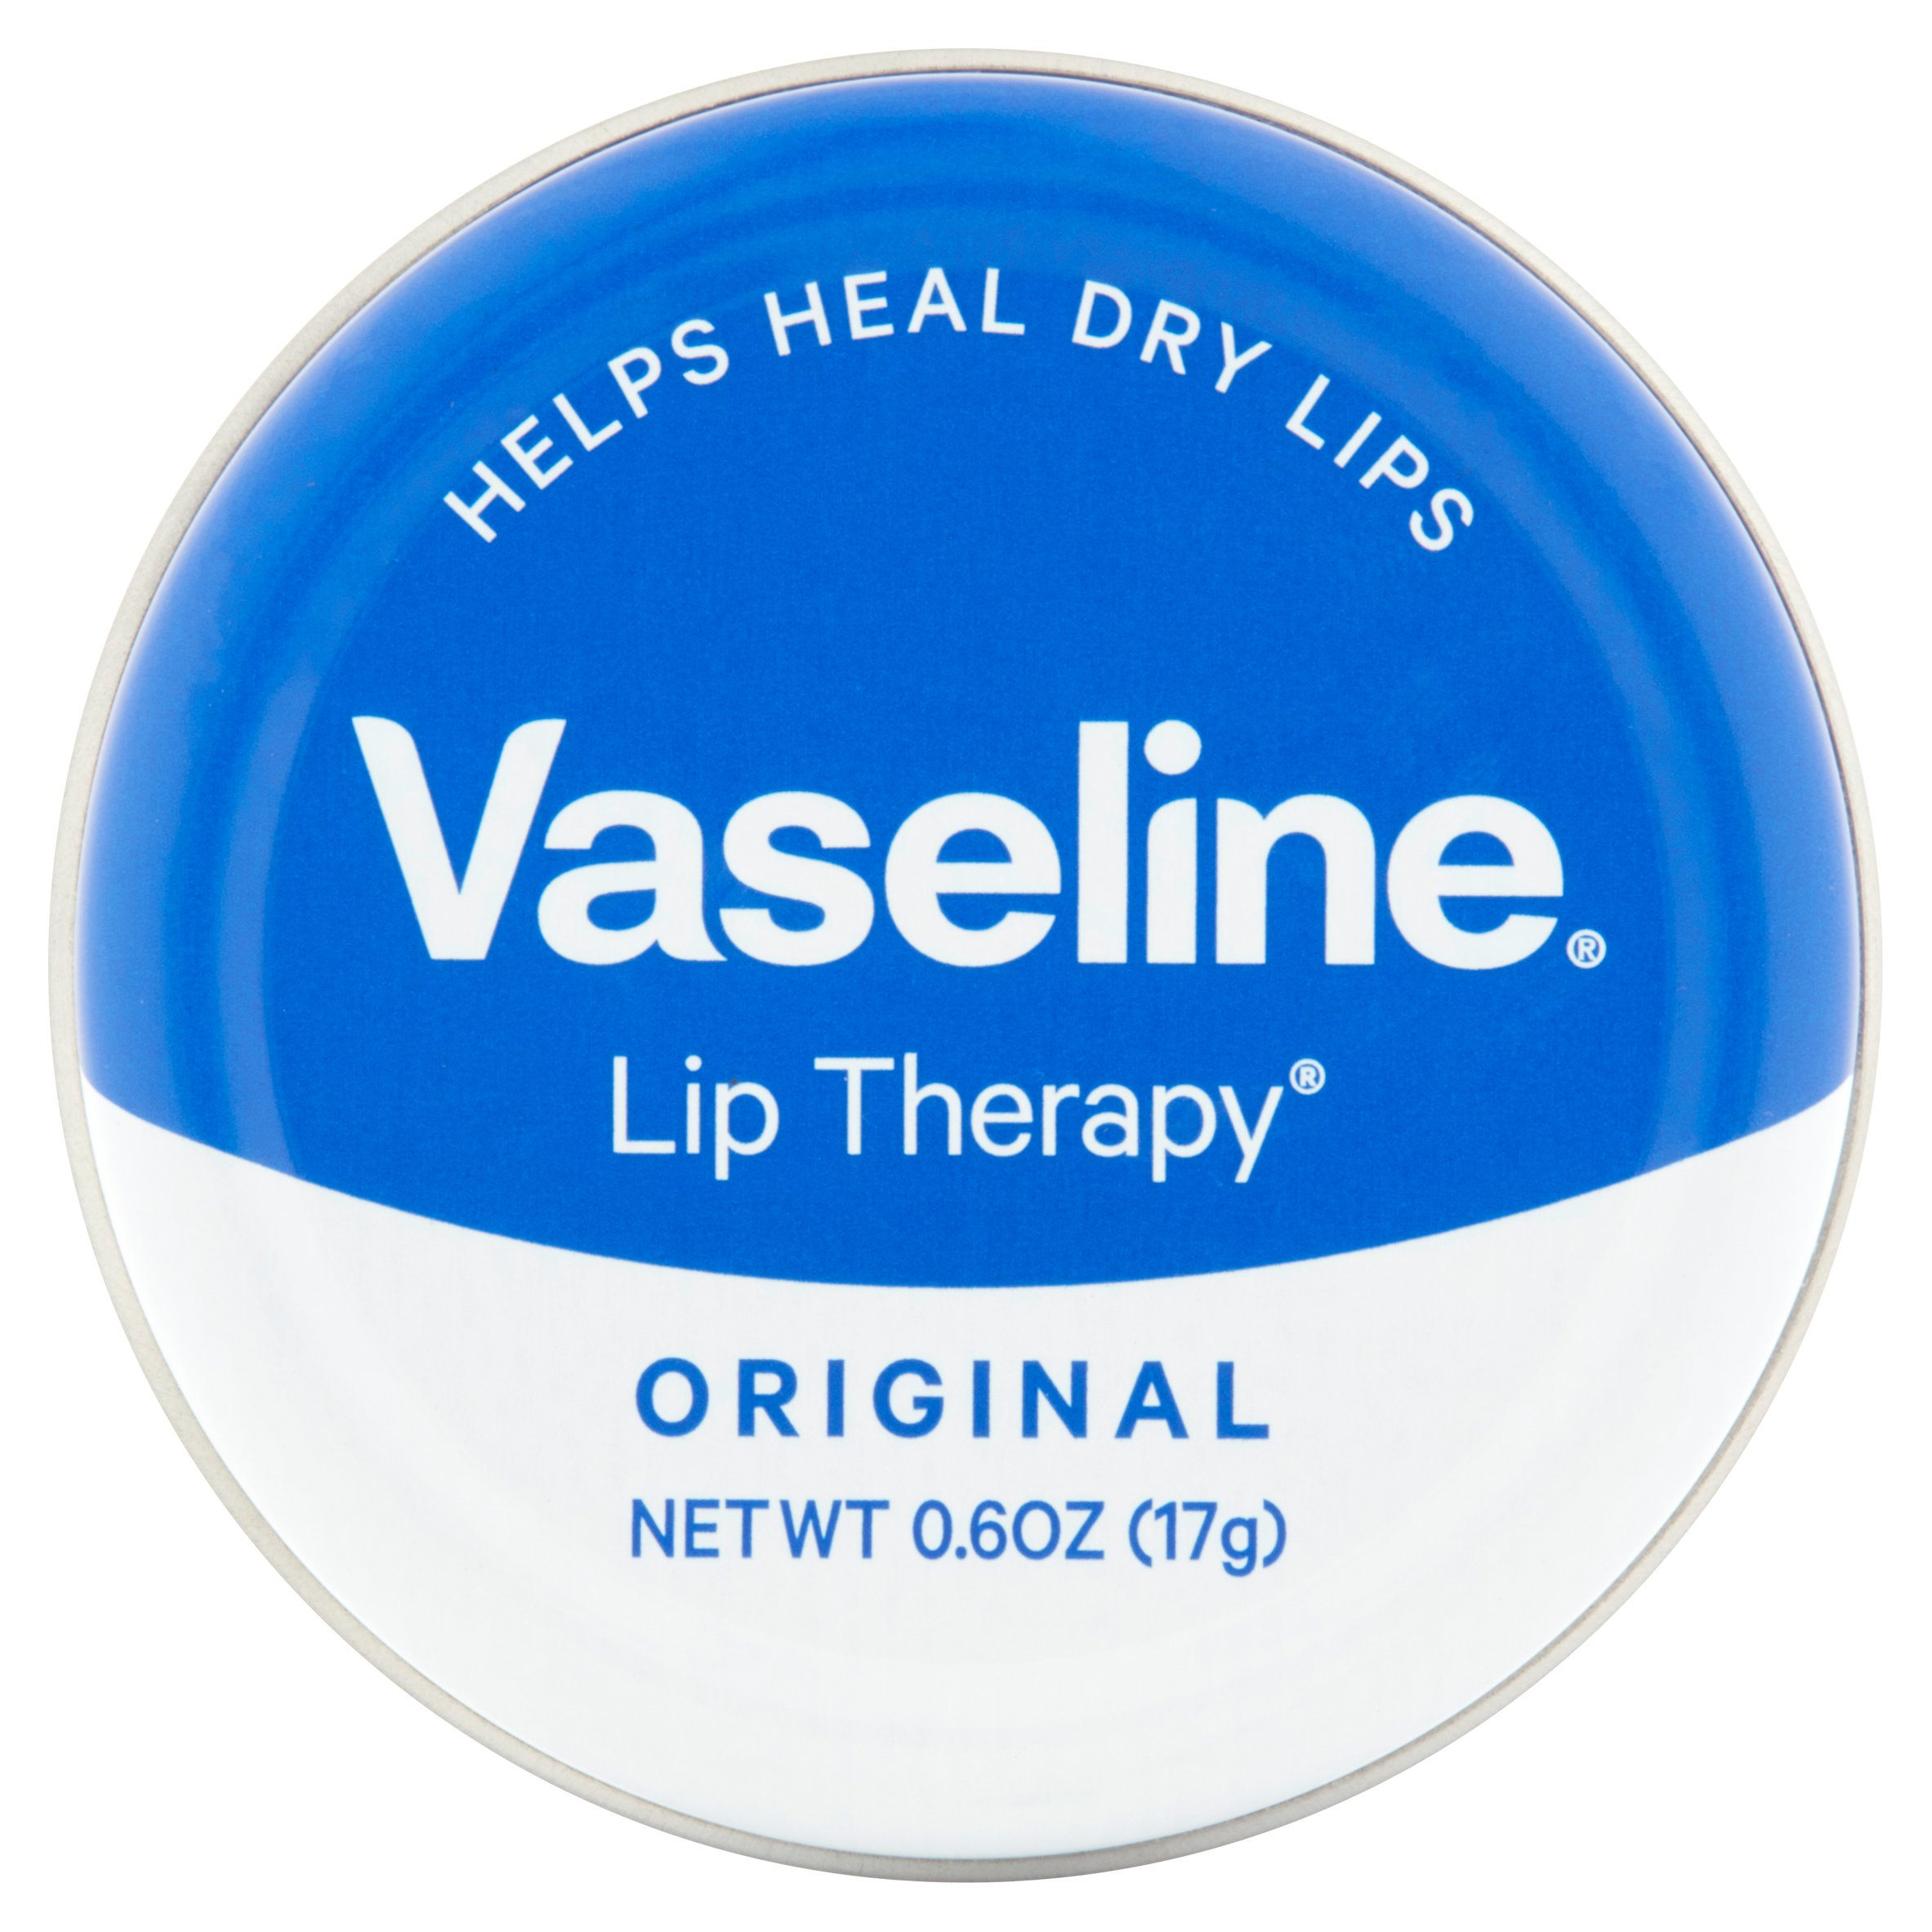 Vaseline Lip Therapy Lip Balm Tin Original 0.6 oz